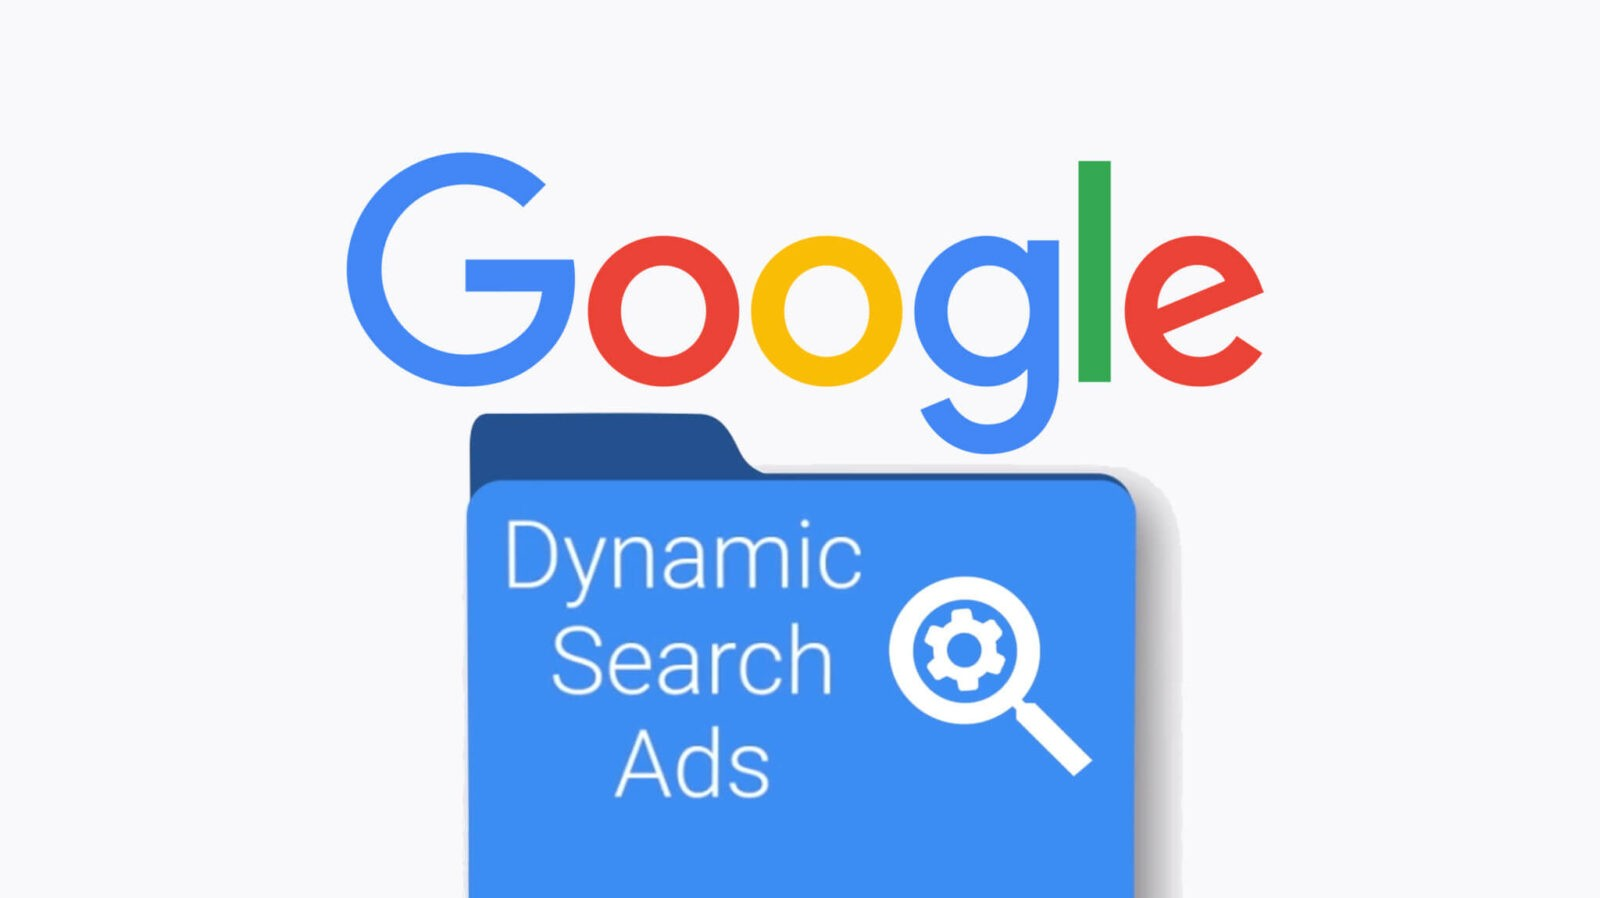 How to Use Dynamic Search Ads